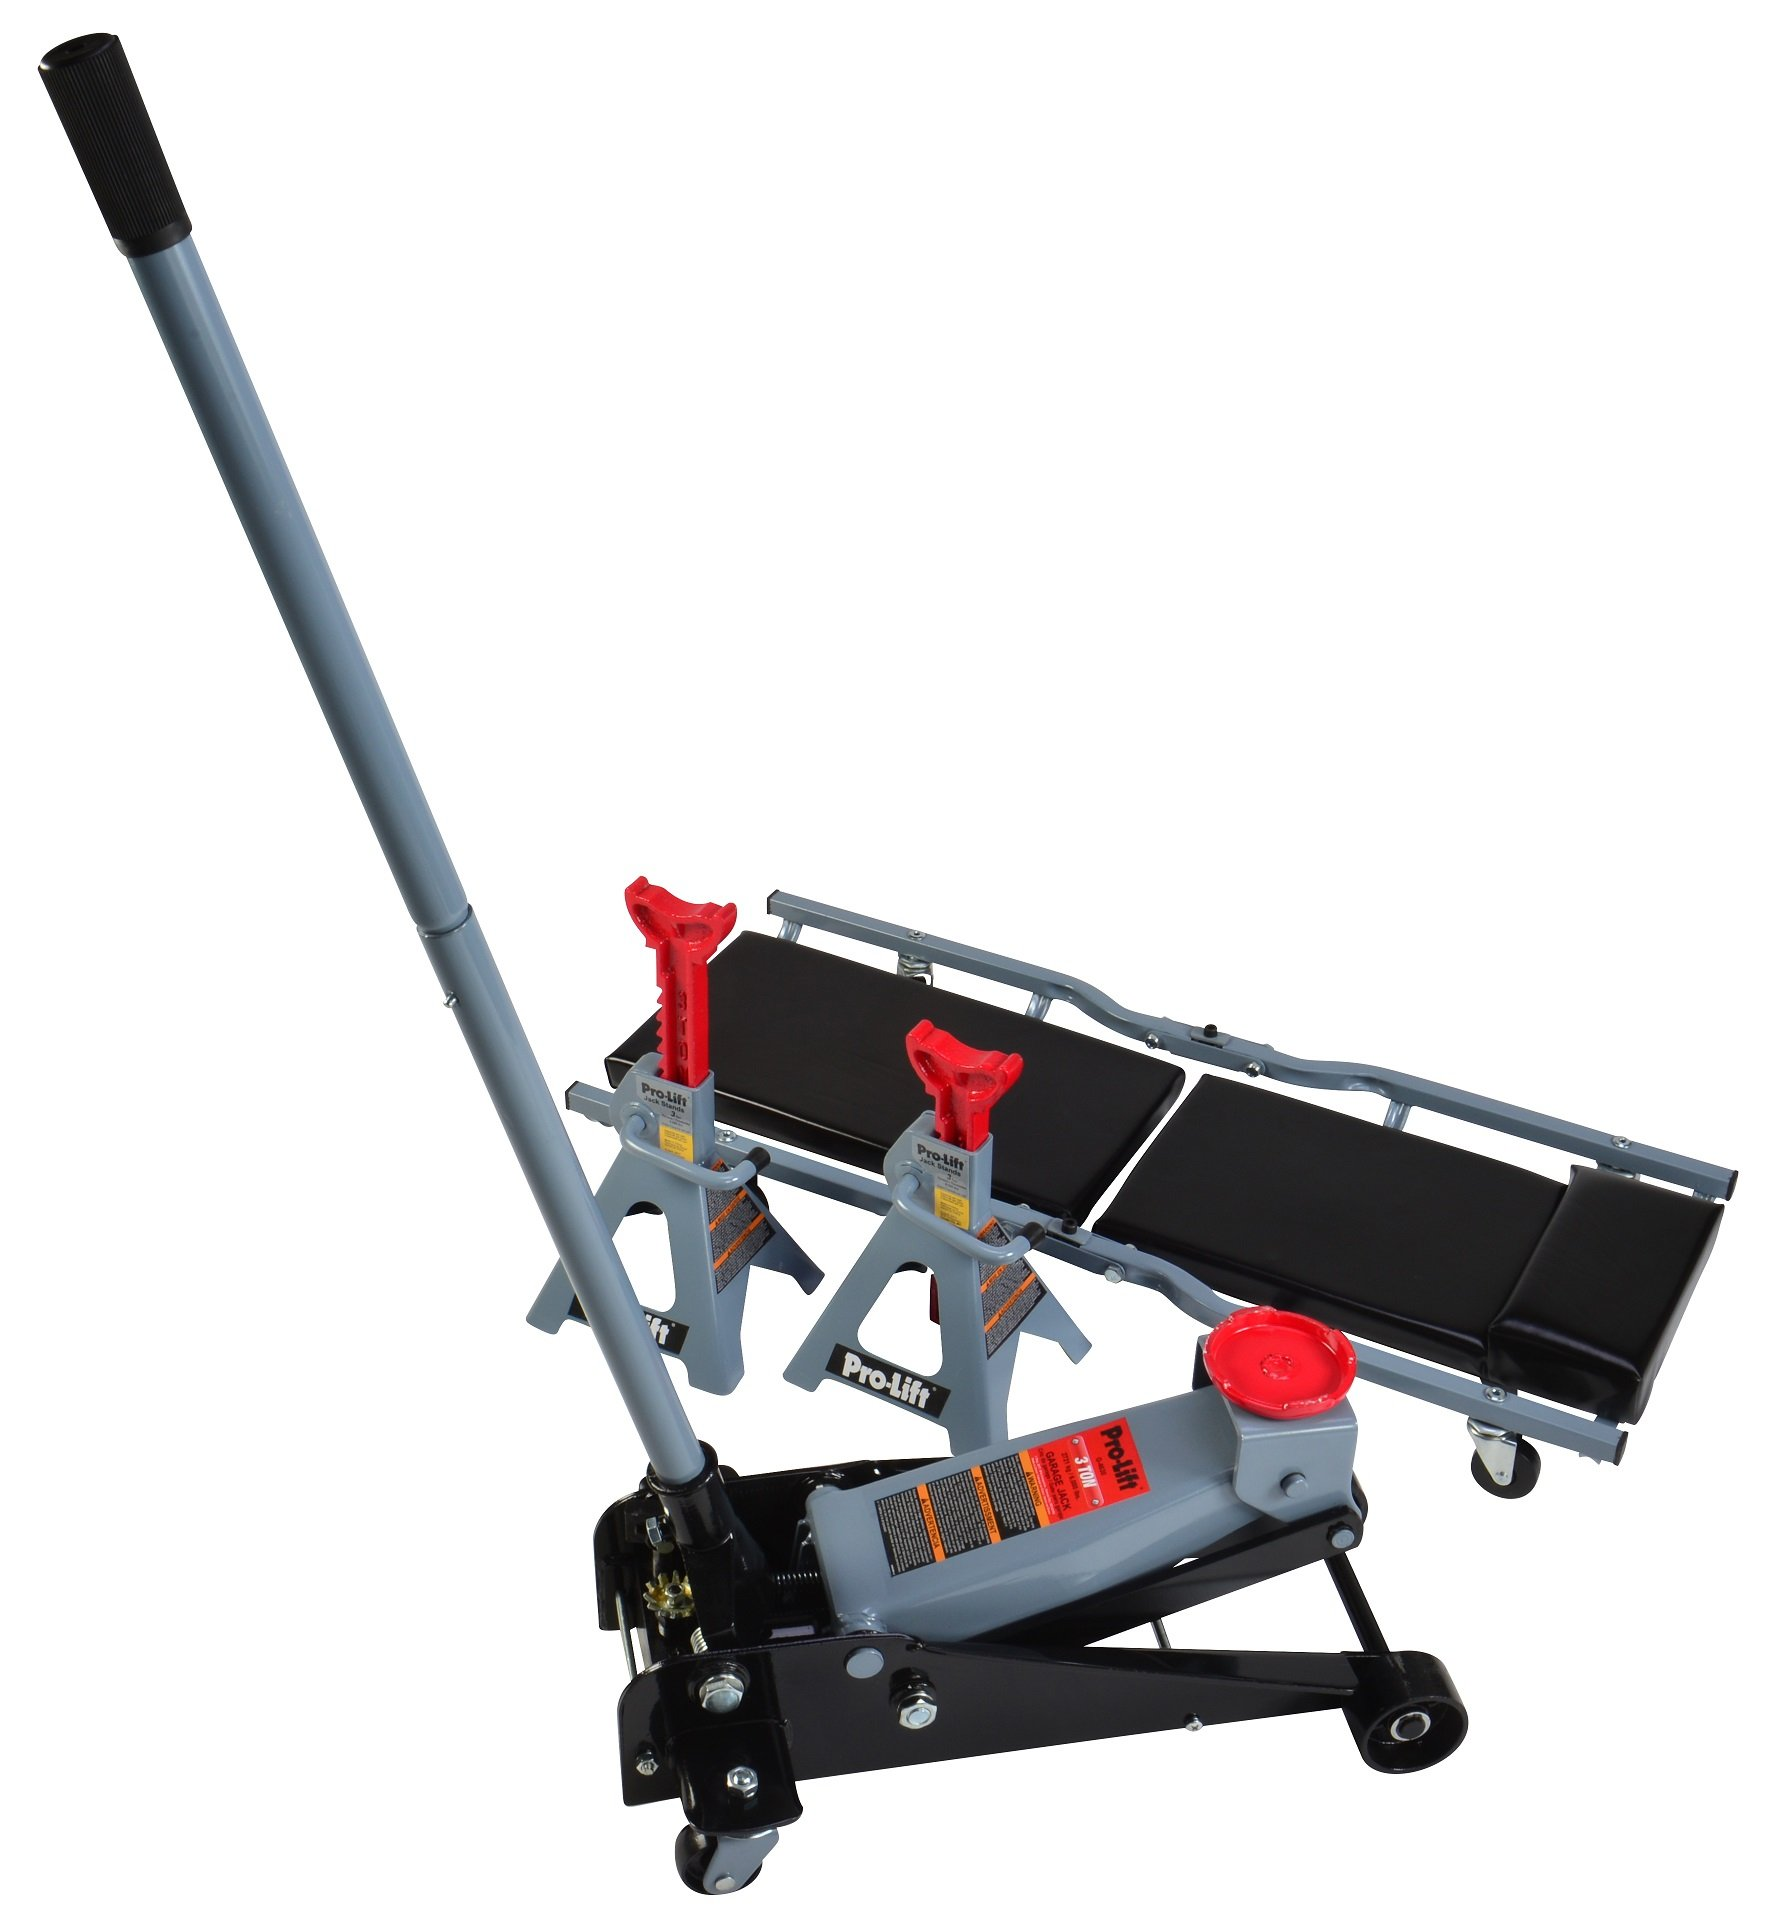 Pro Lift G-4630JSC 3 Ton Heavy Duty Floor Jack / Jack Stands and Creeper Combo - Great for Service Garage Home Uses by Pro-LifT (Image #2)